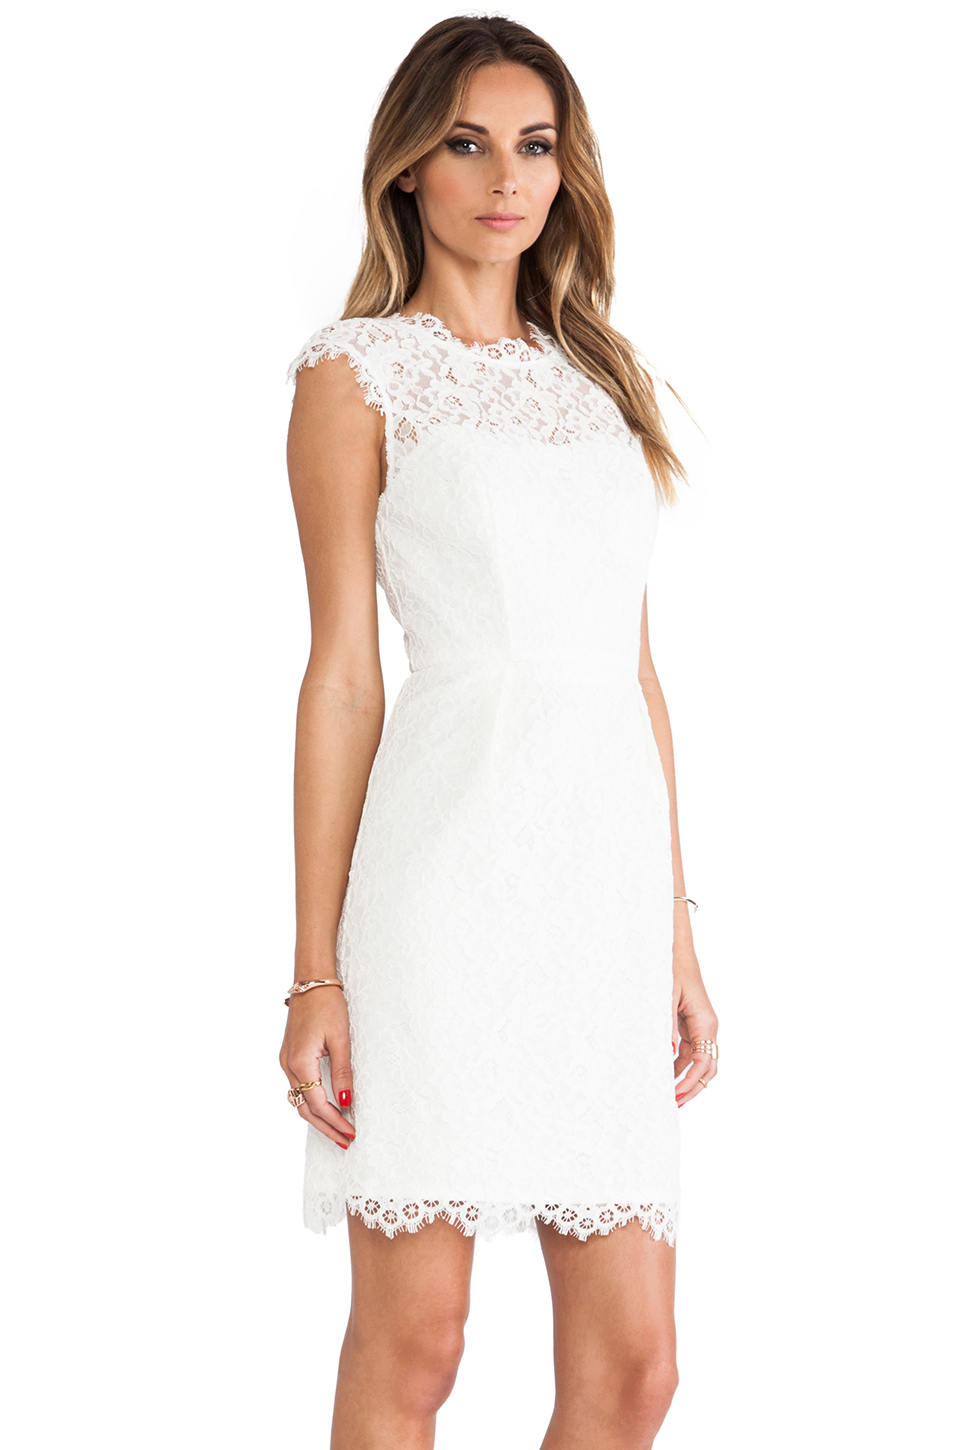 Shoshanna Lace Scarlett Dress in White | Lyst